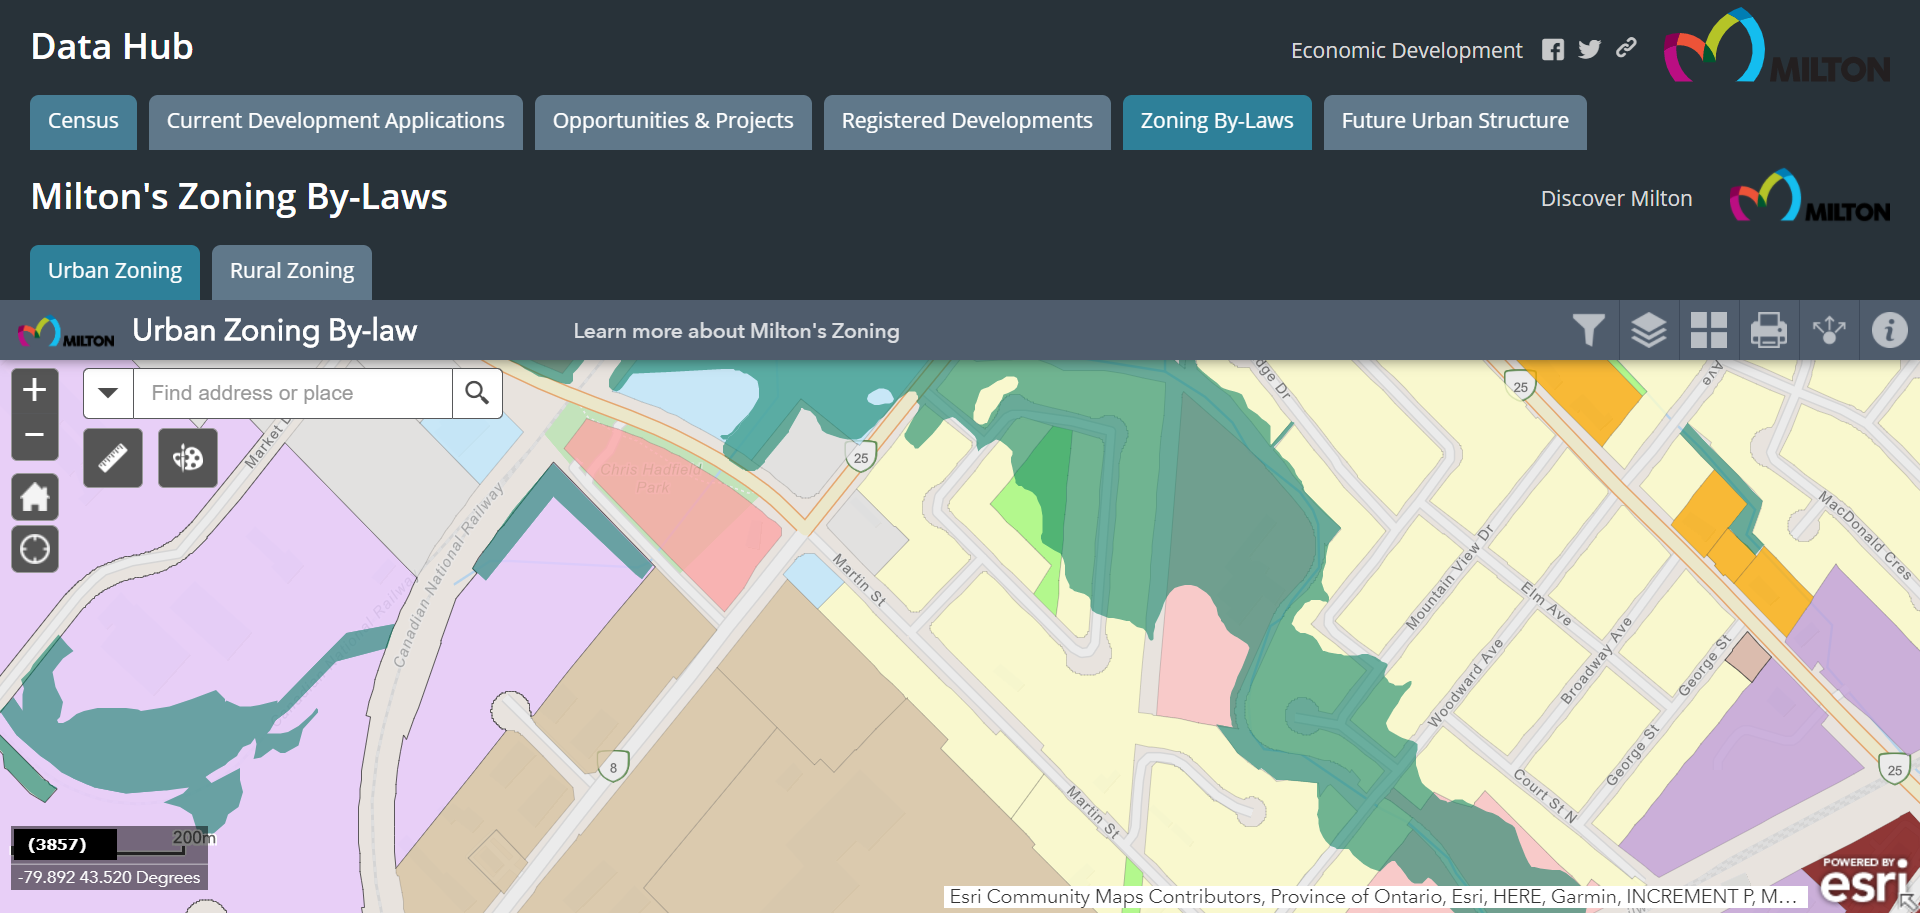 Picture of Data Hub on Zoning By-Laws tab